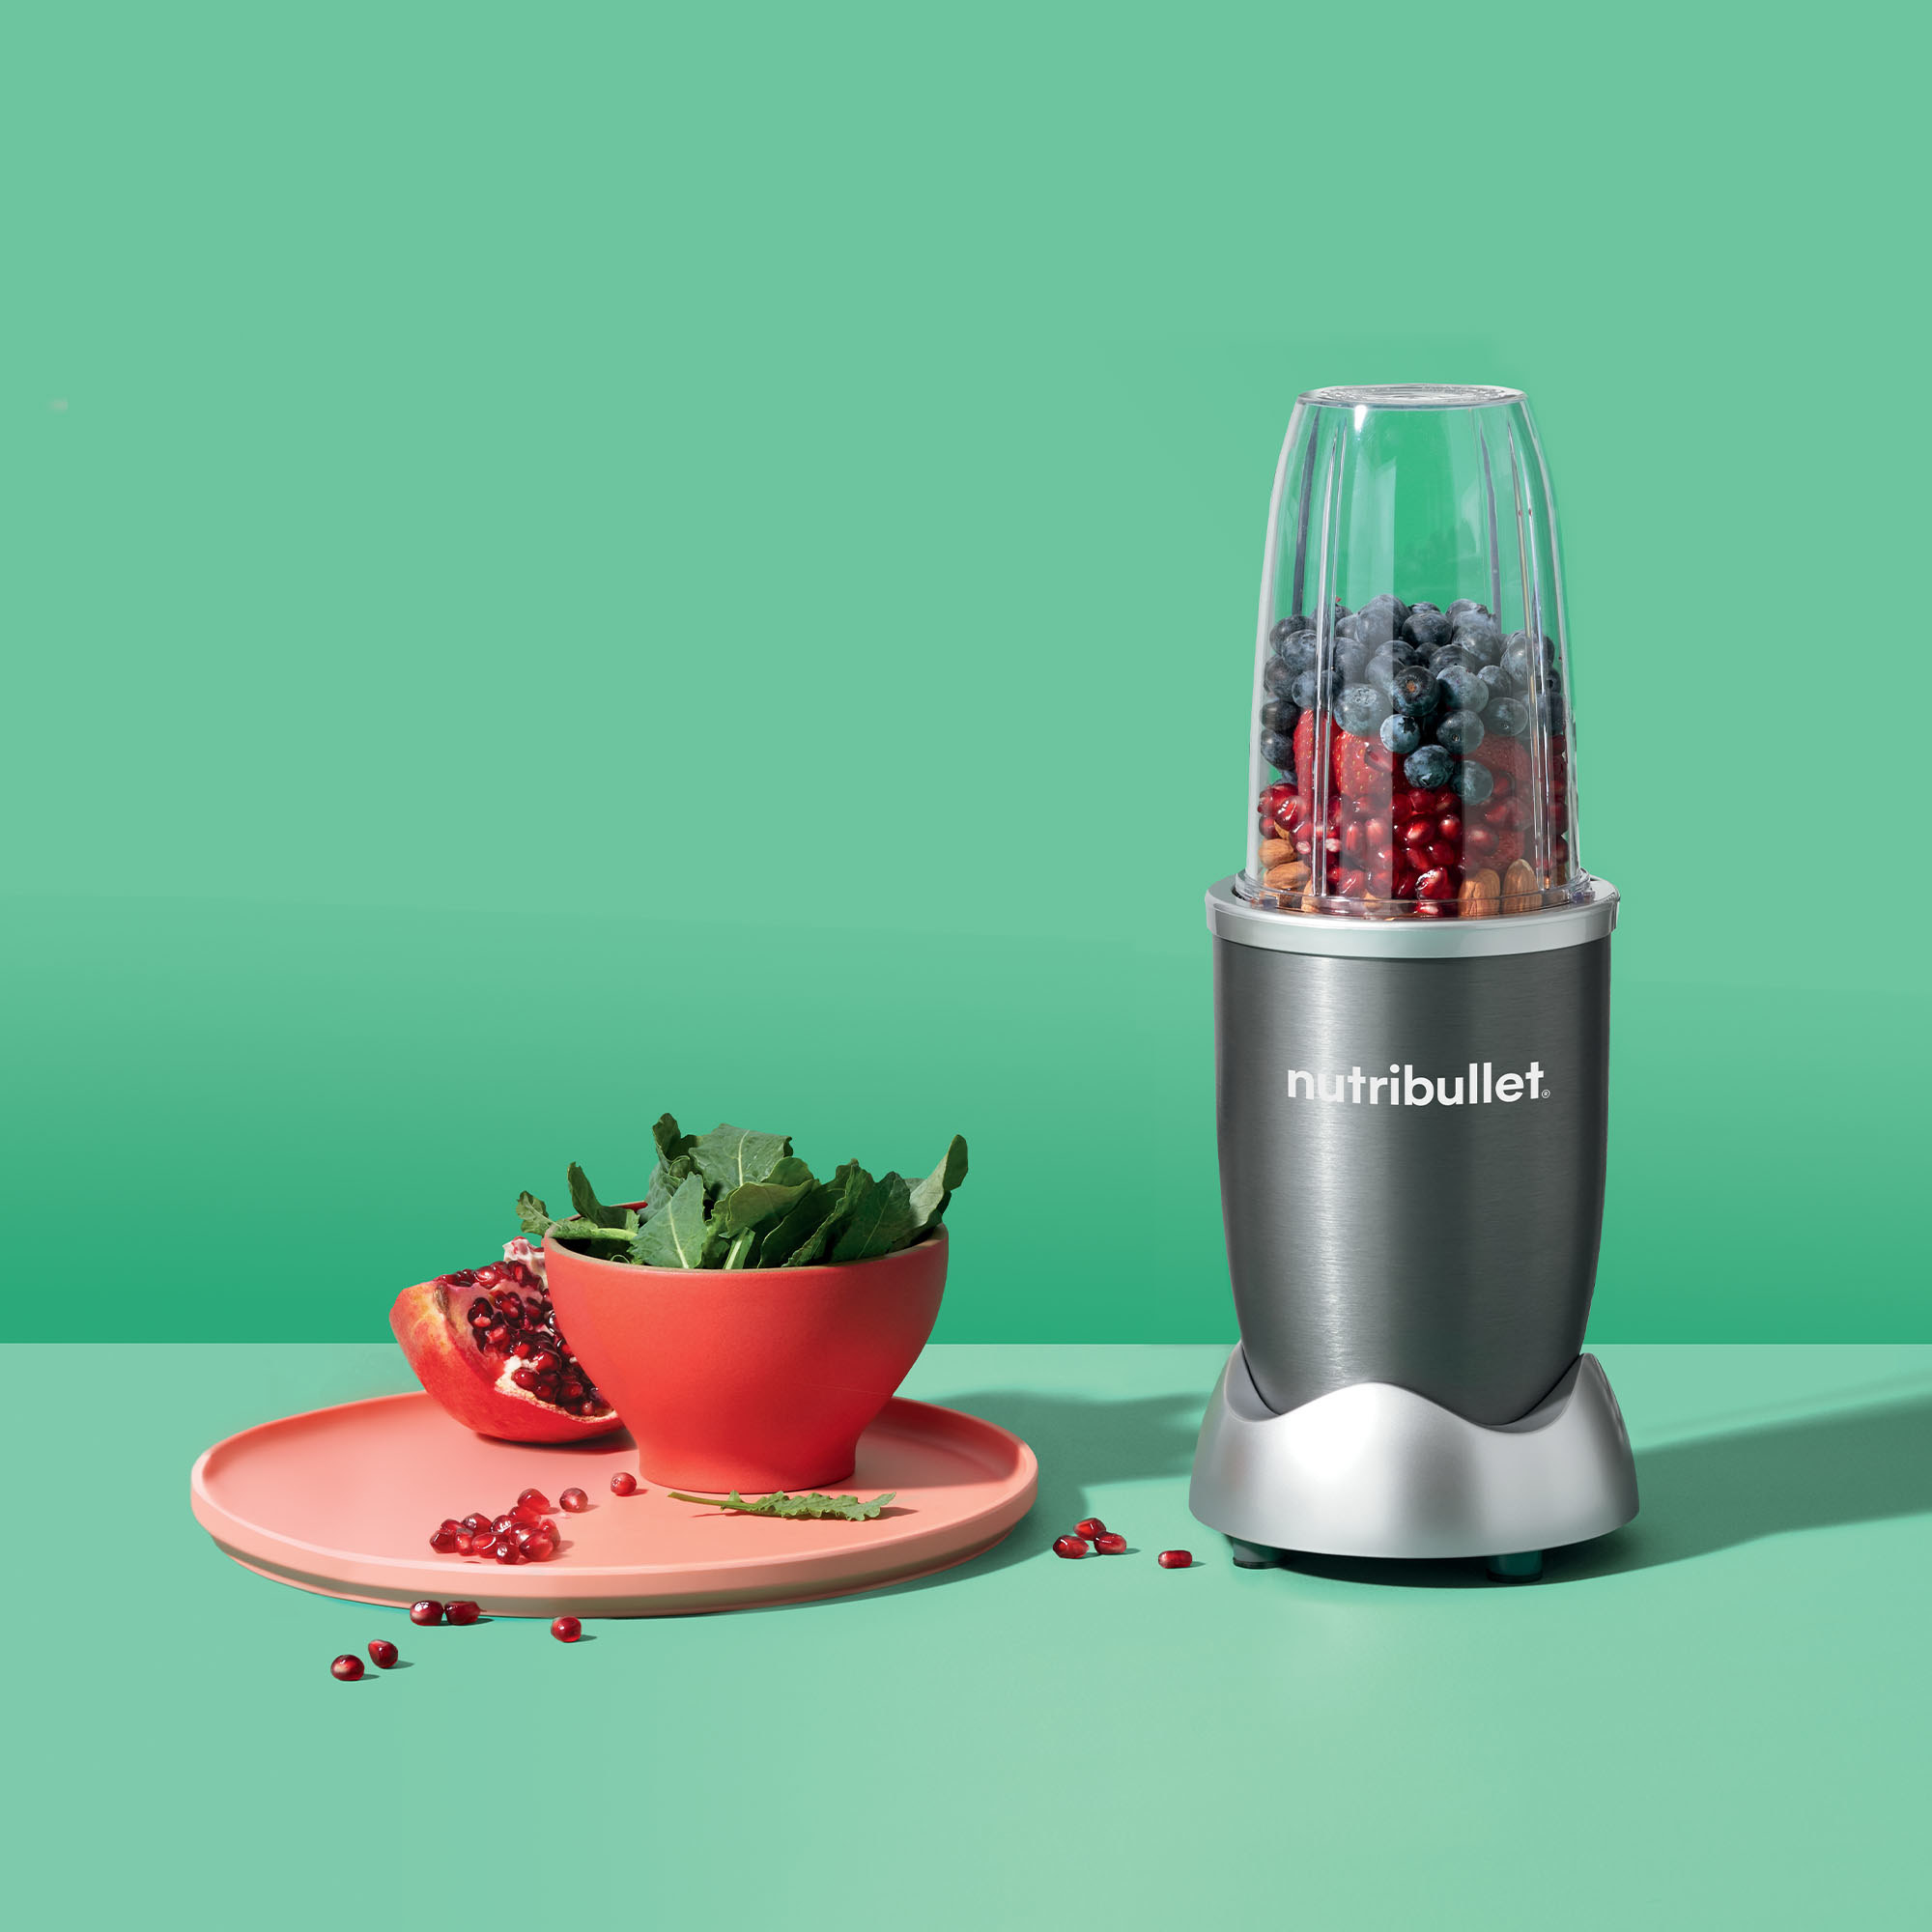 grey nutribullet with fruit inside next to a plate of vegetables and fruit on a green backdrop